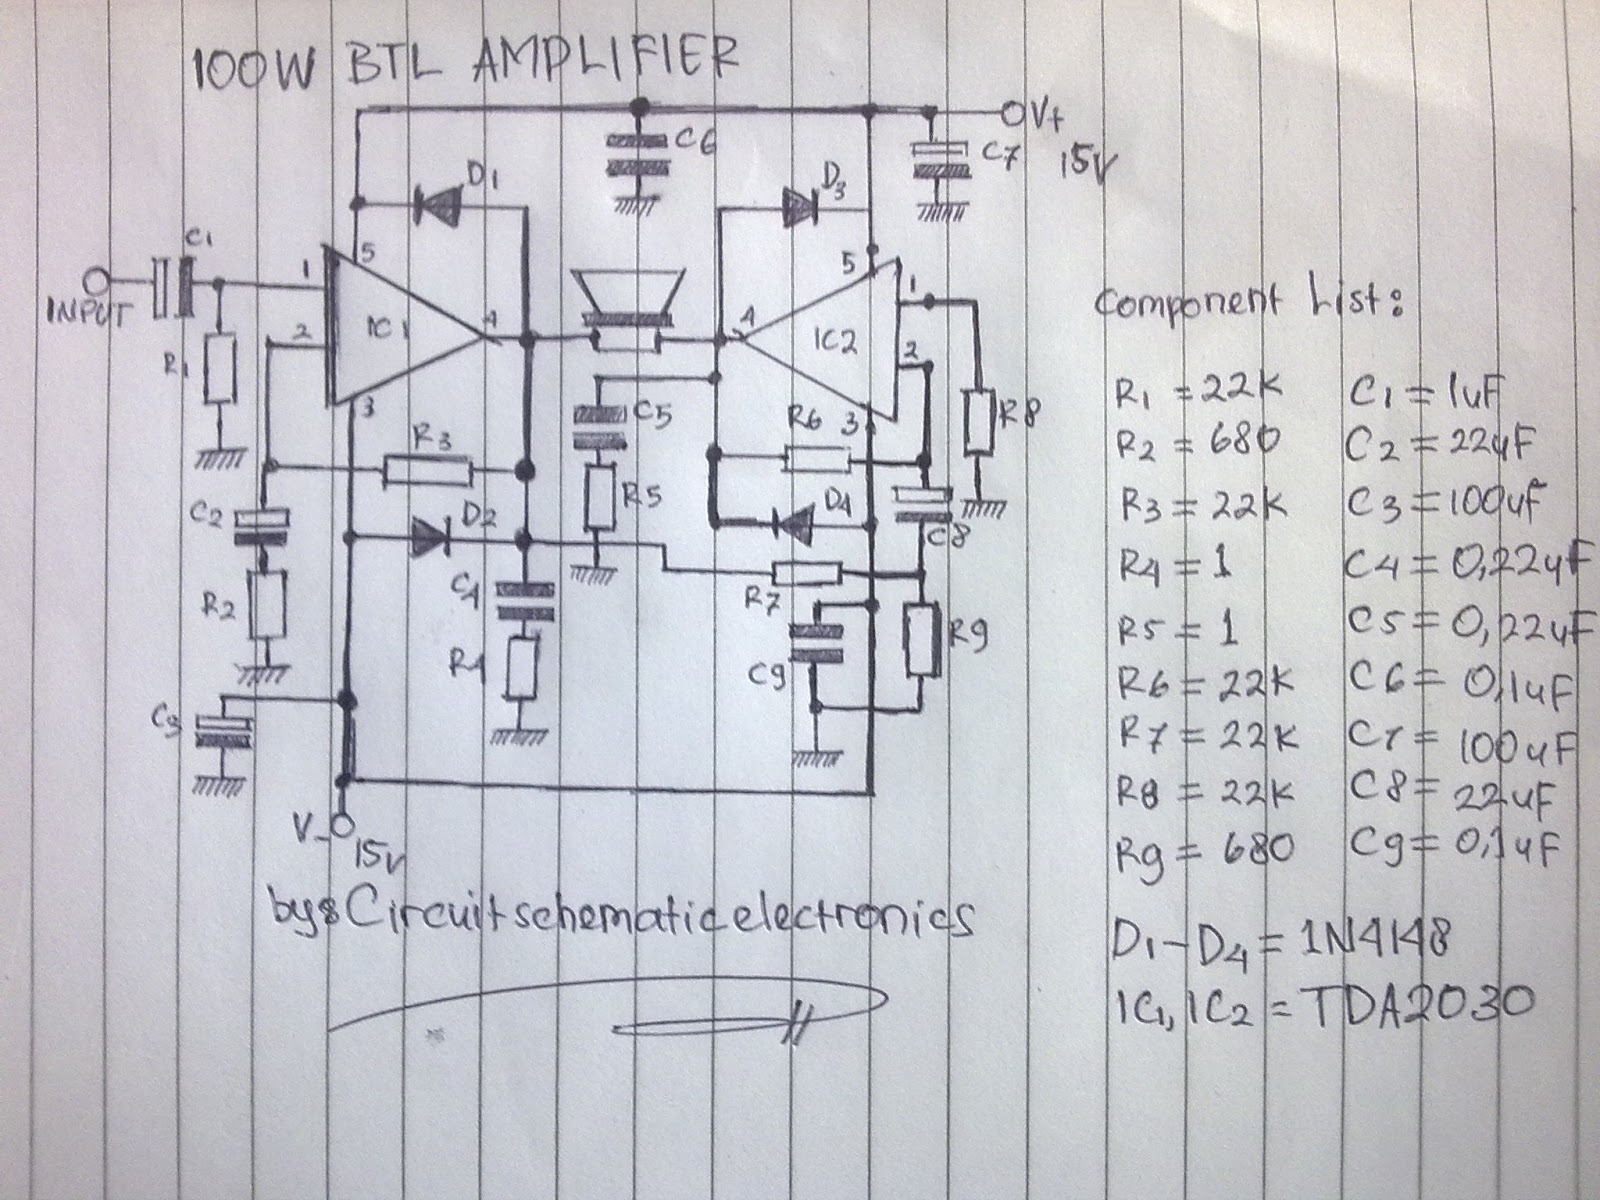 2000w power amplifier circuit diagram iphone schematic and wiring 100w btl tda2030 electronic